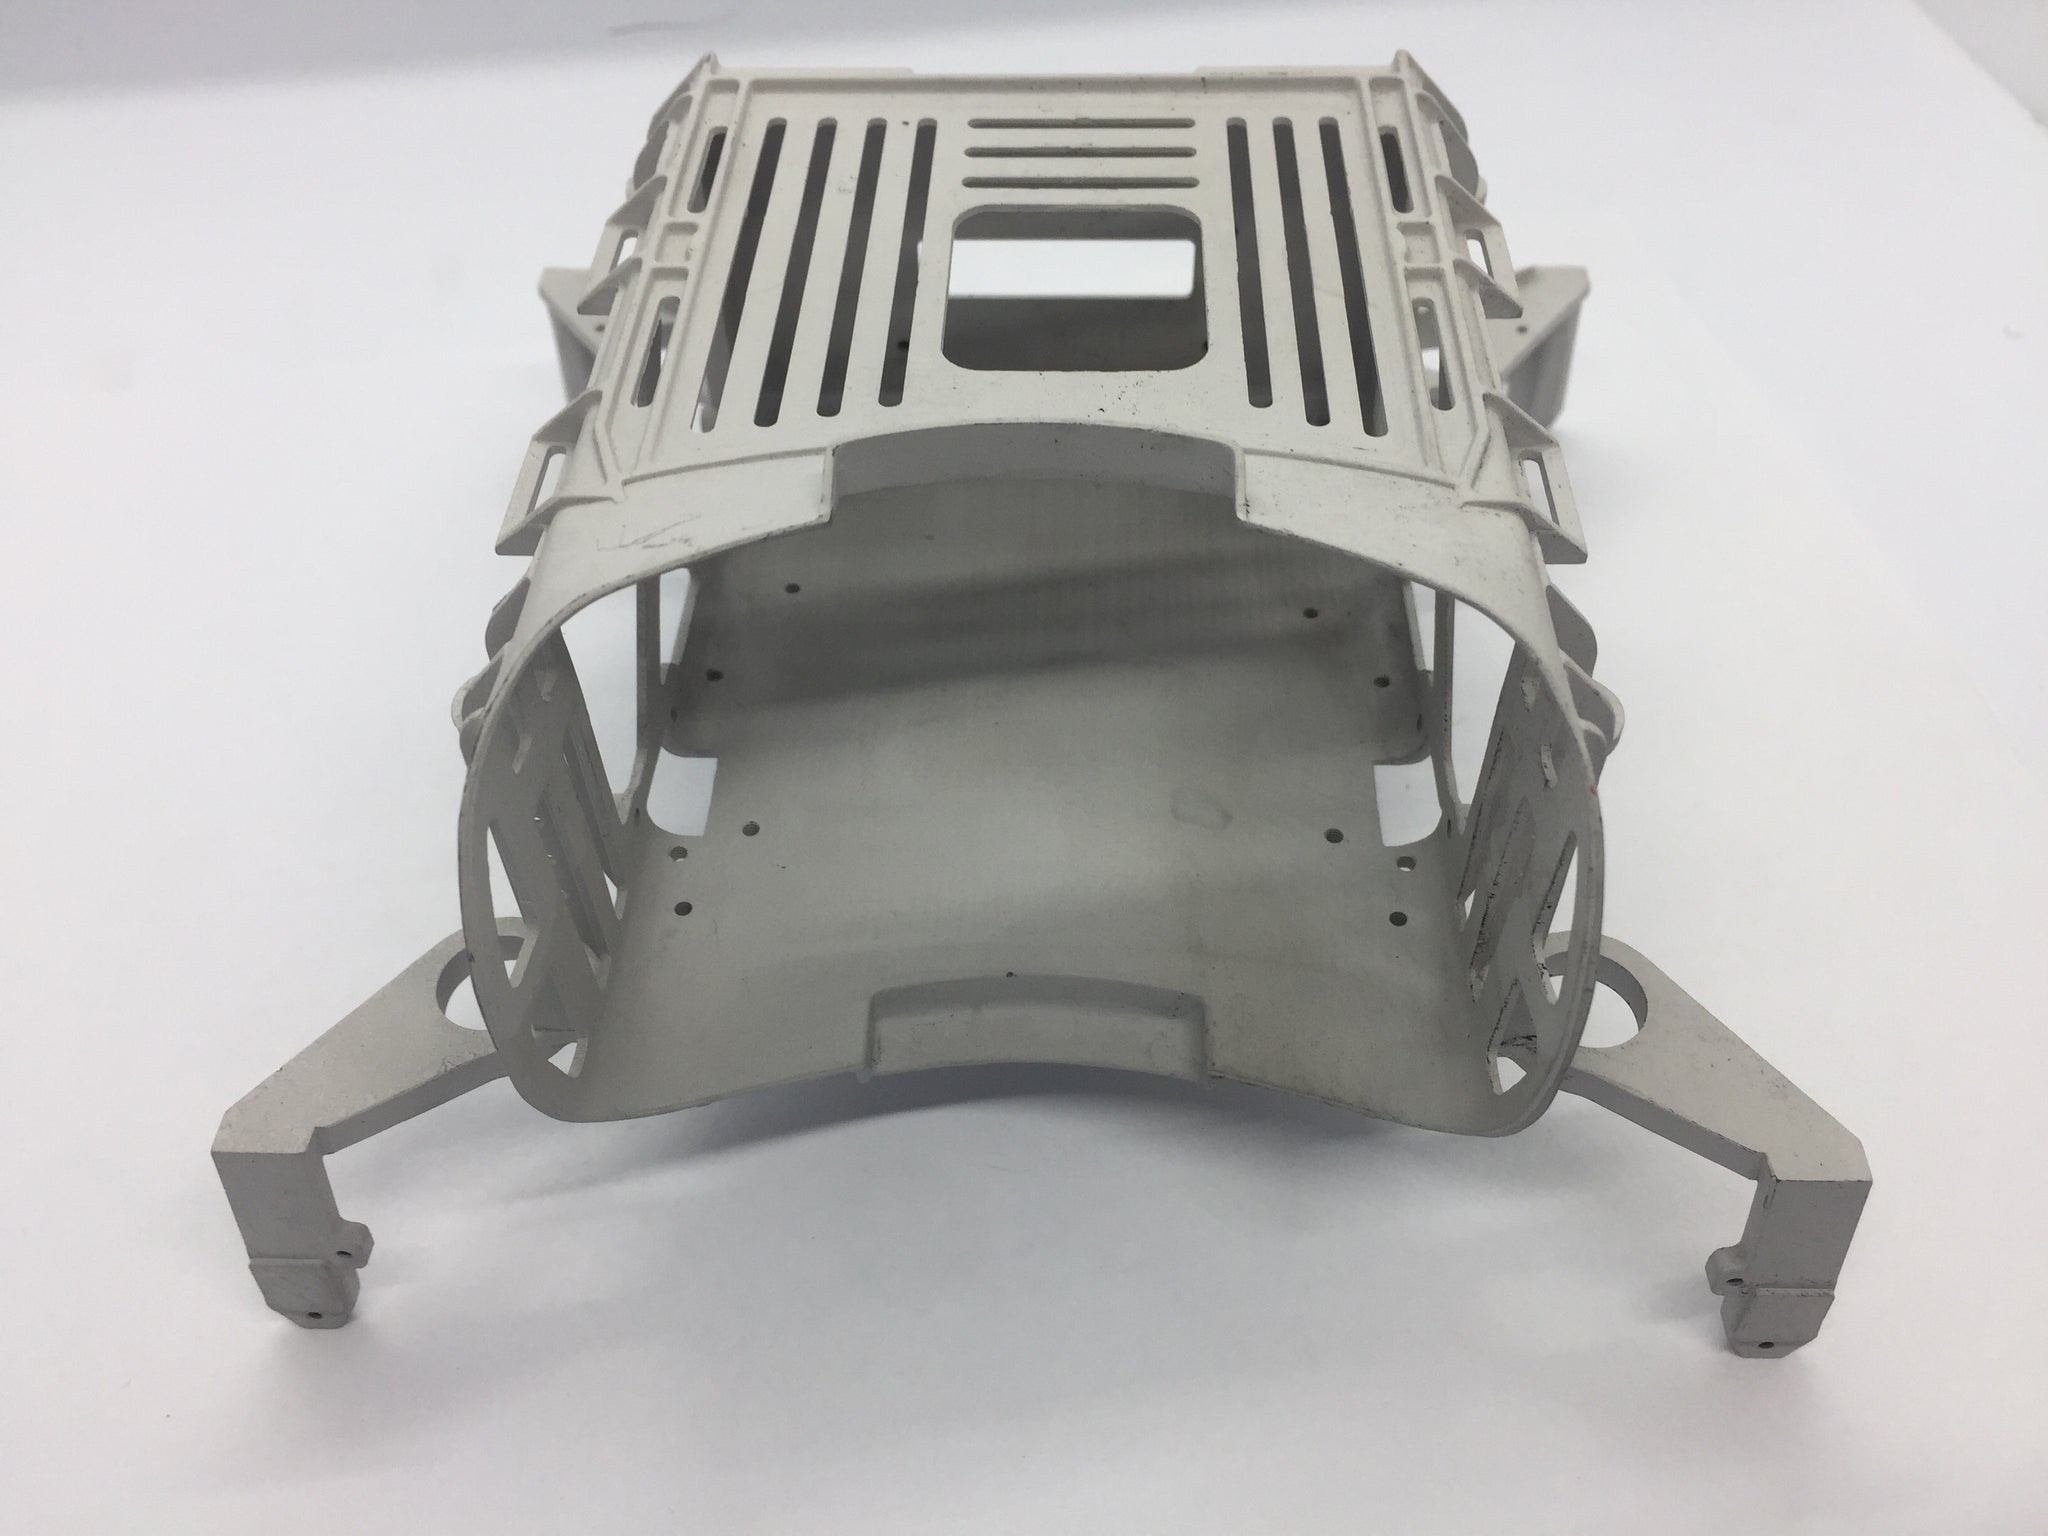 DJI Phantom 4 Pro Middle Frame Center Battery Compartment